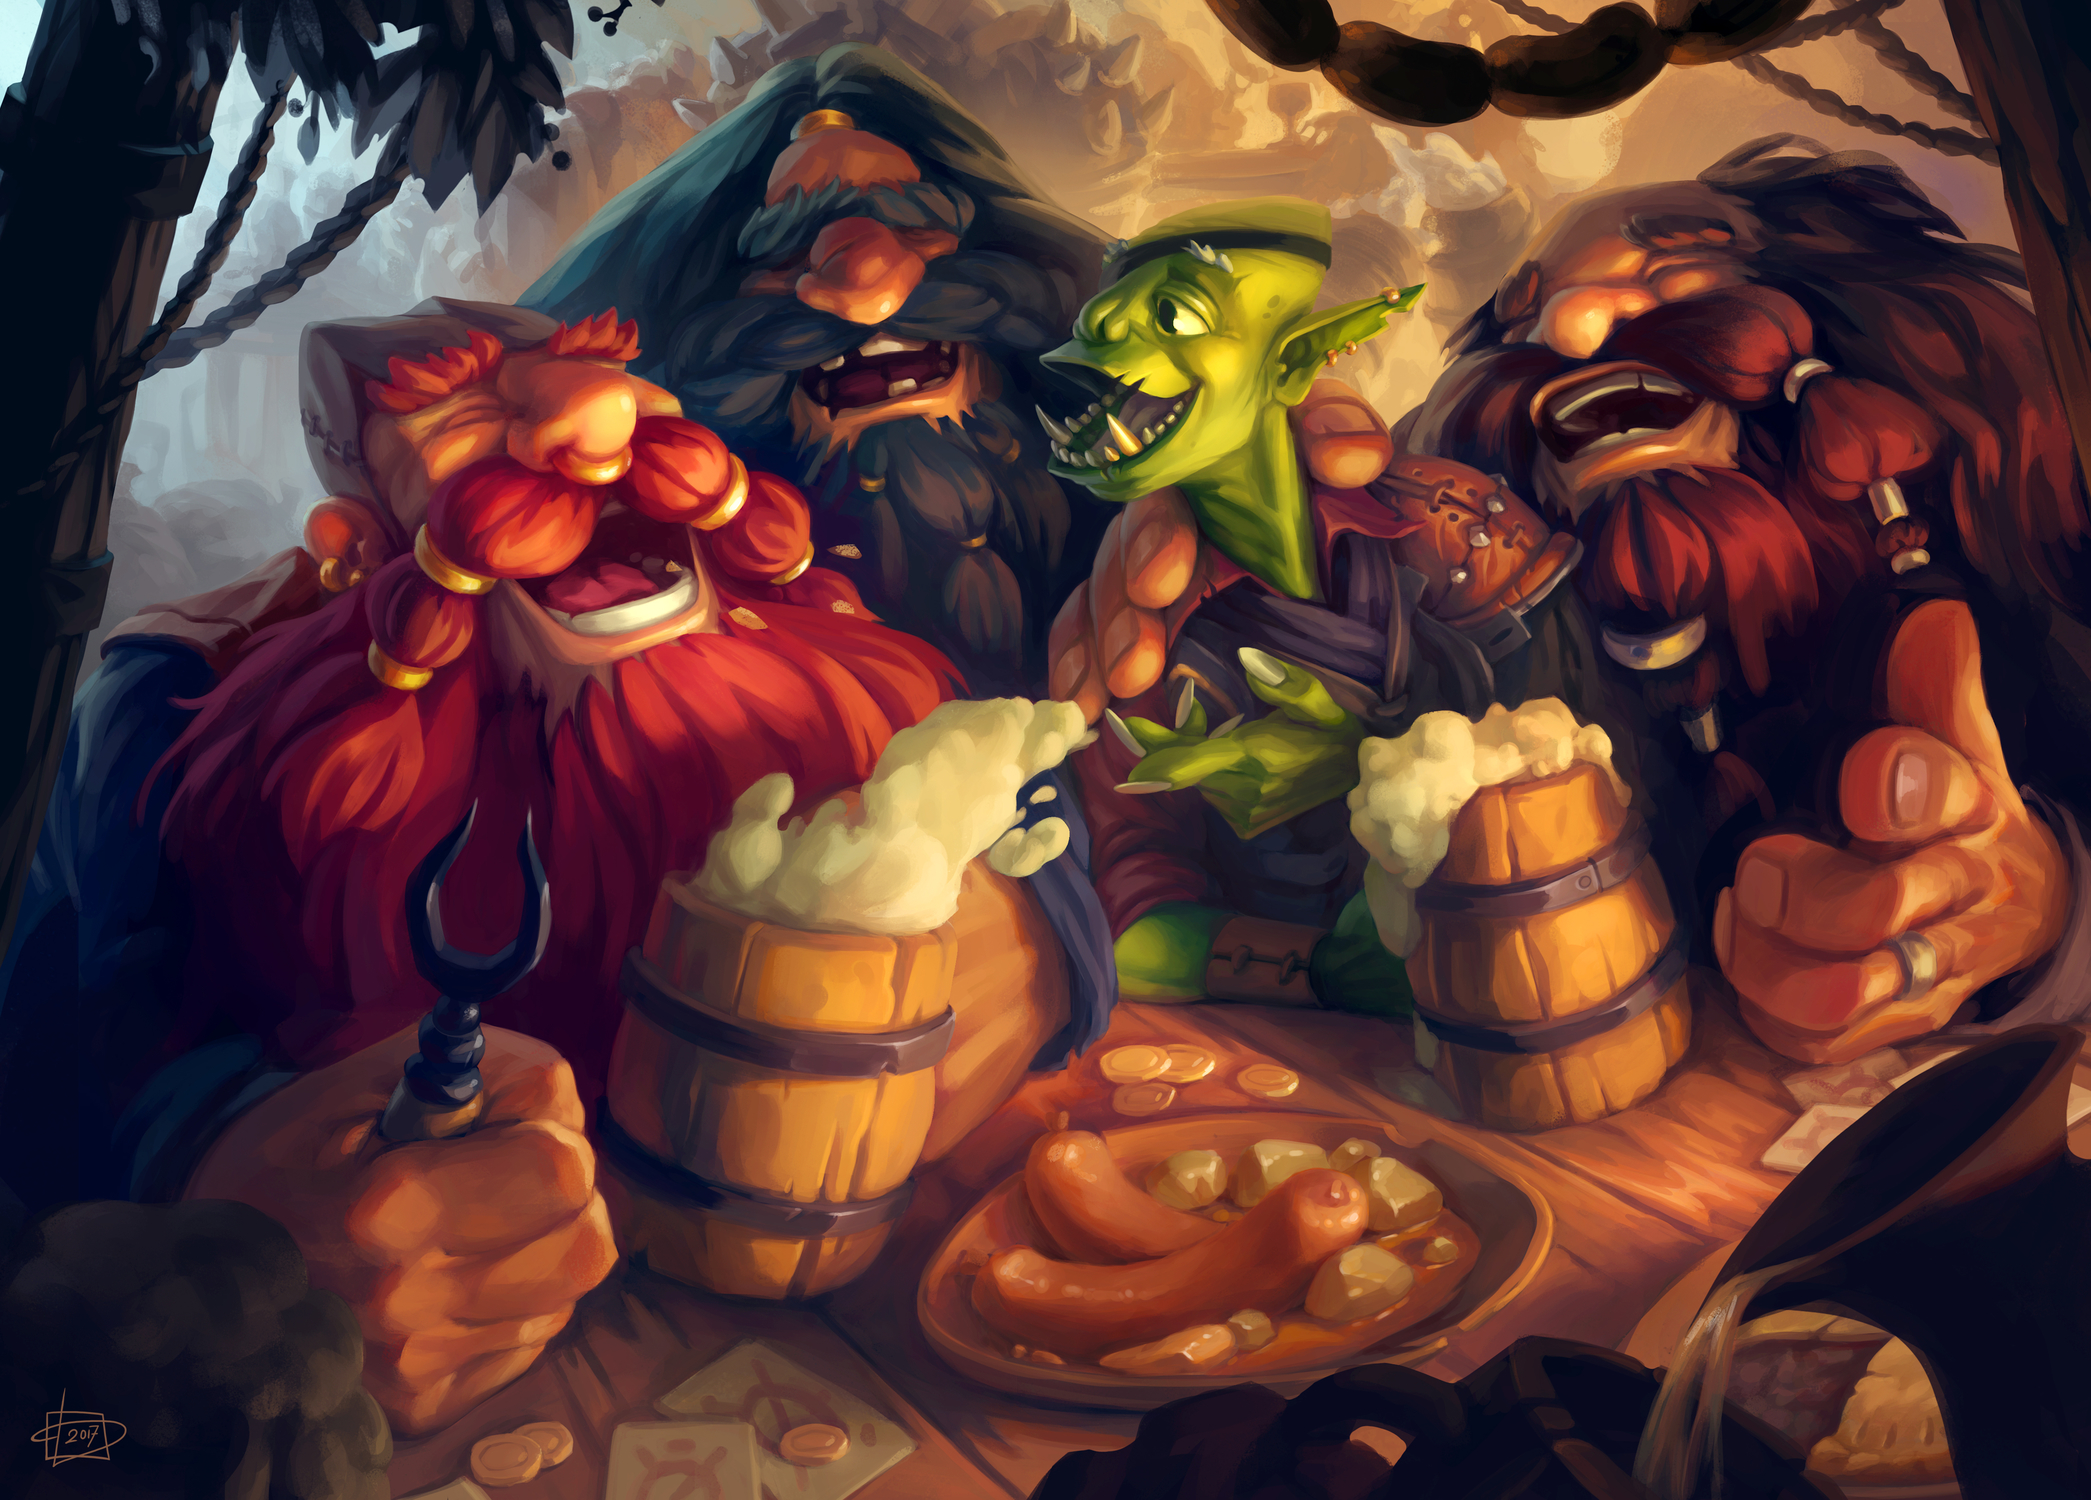 Once Upon a Time in the Tavern Artwork by Polina Mozgovaya